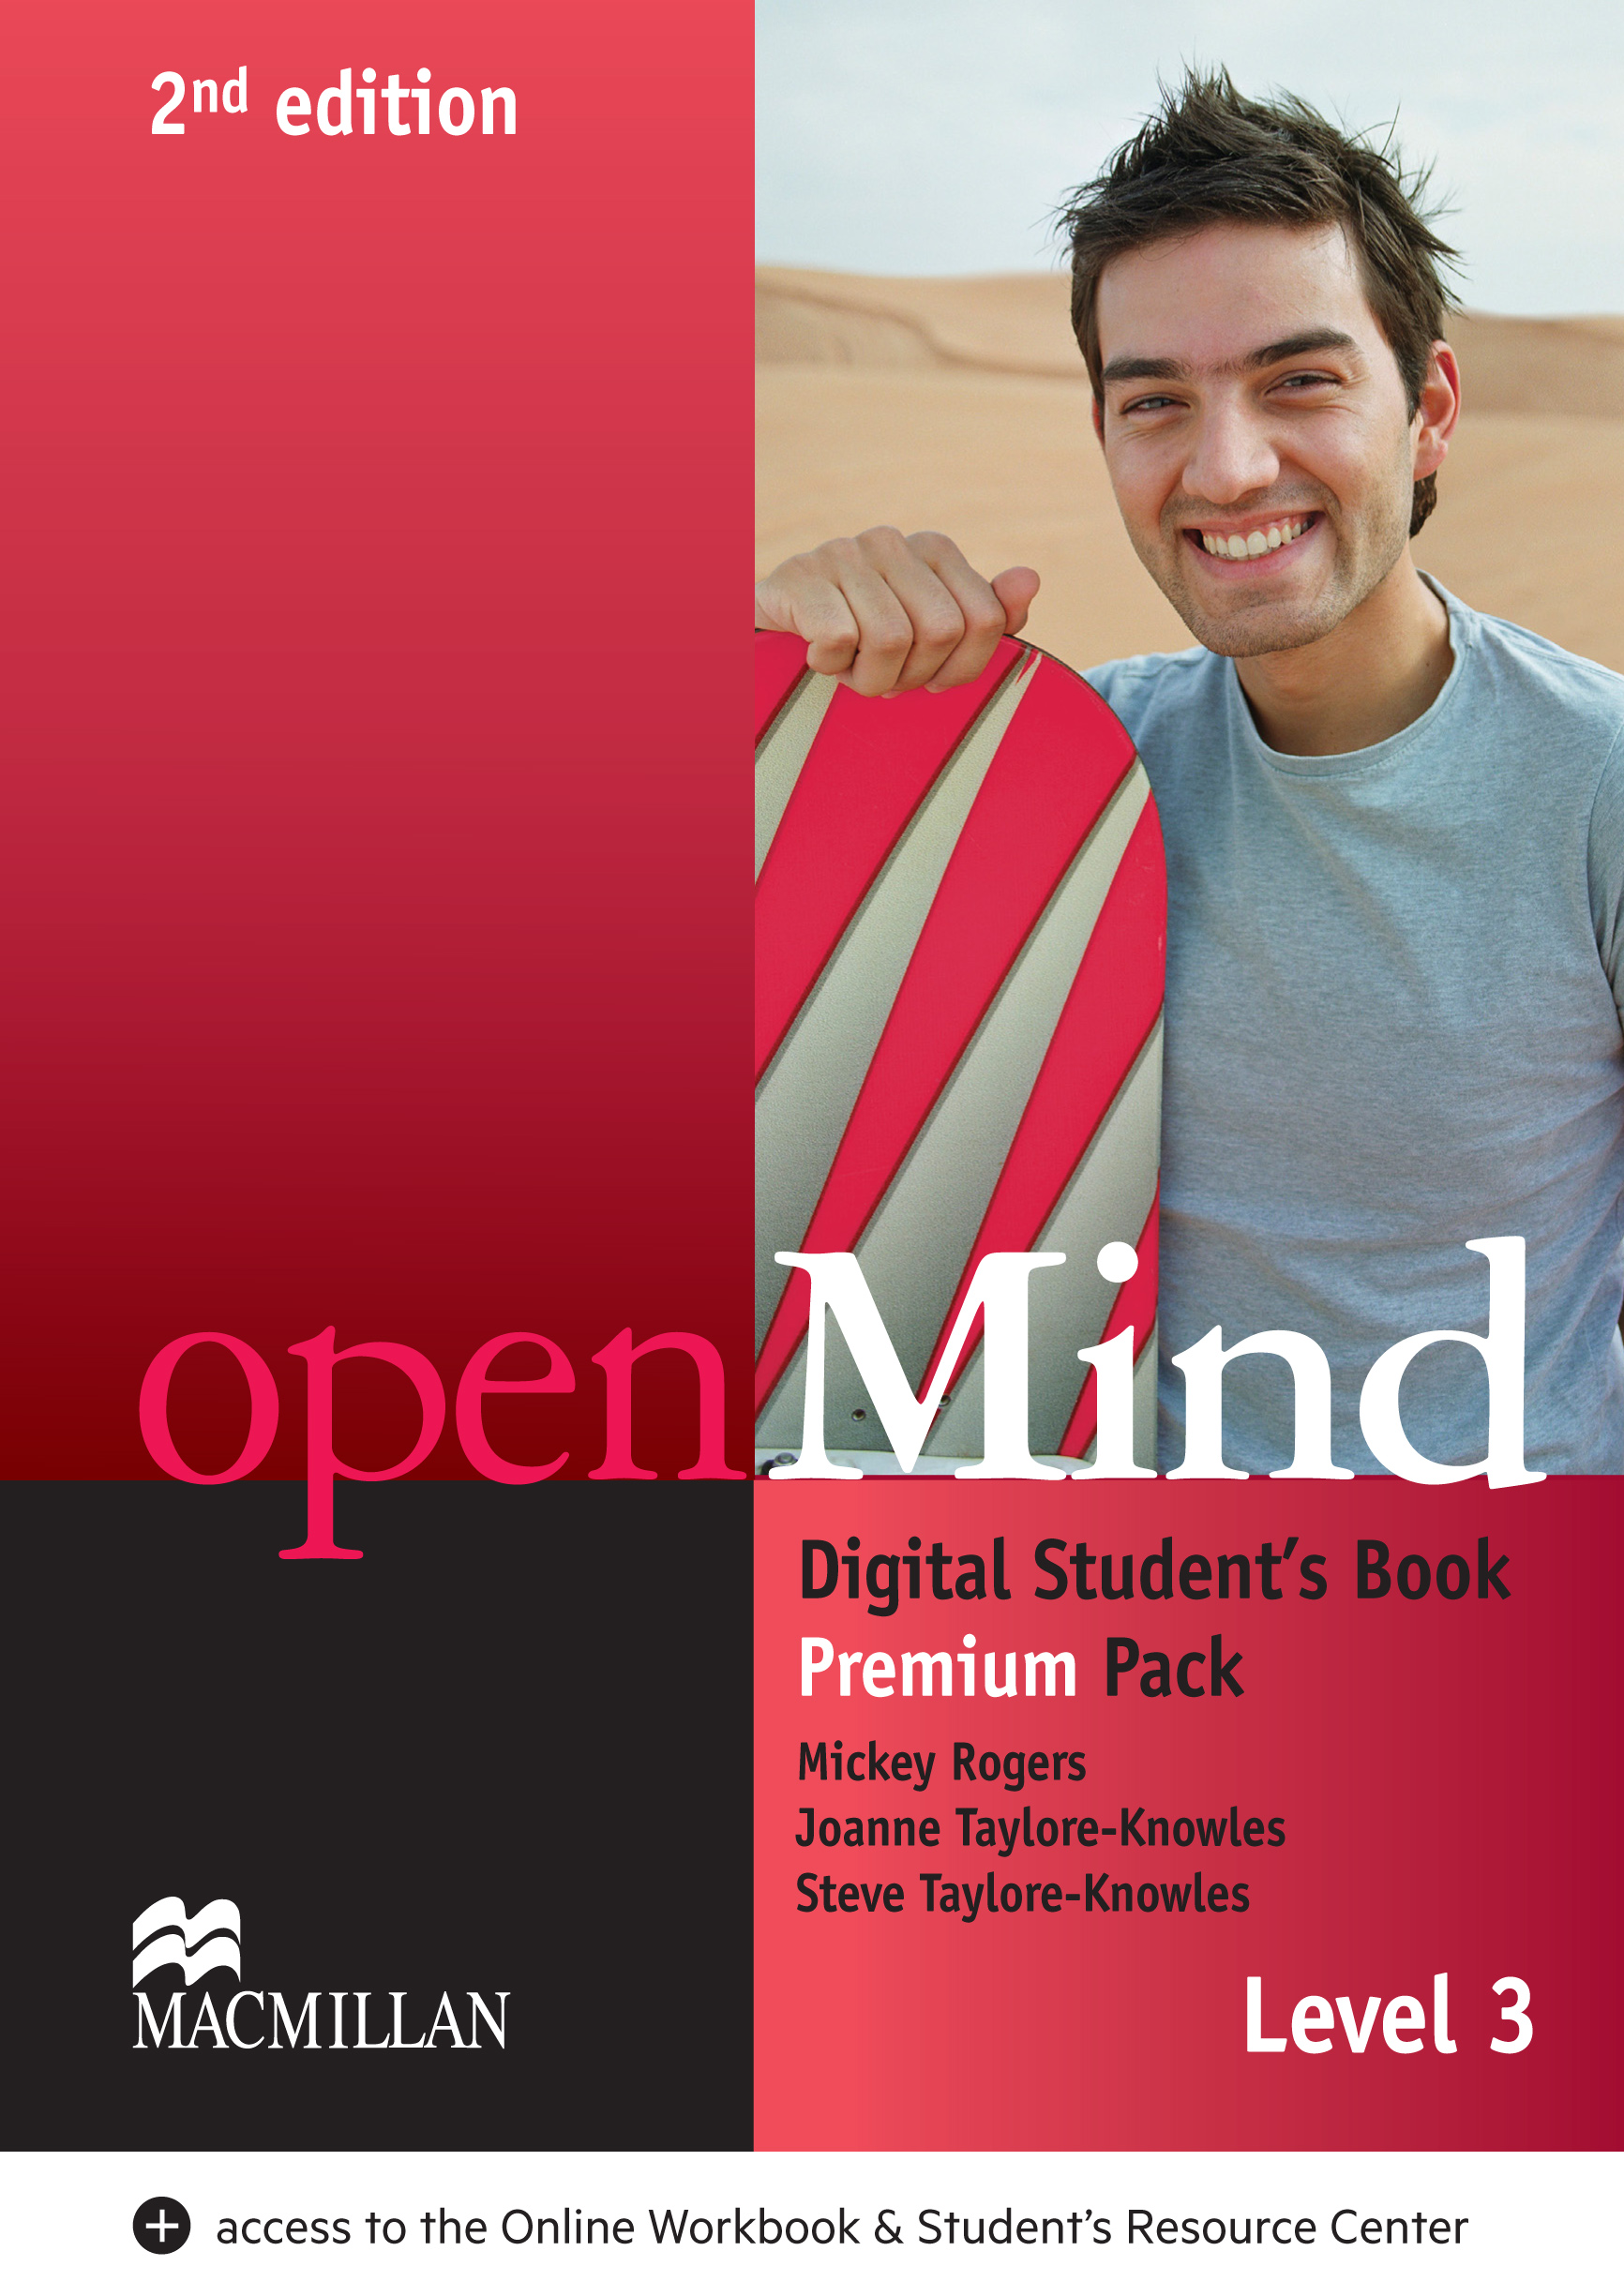 openMind 2nd Edition Level 3 Digital Student